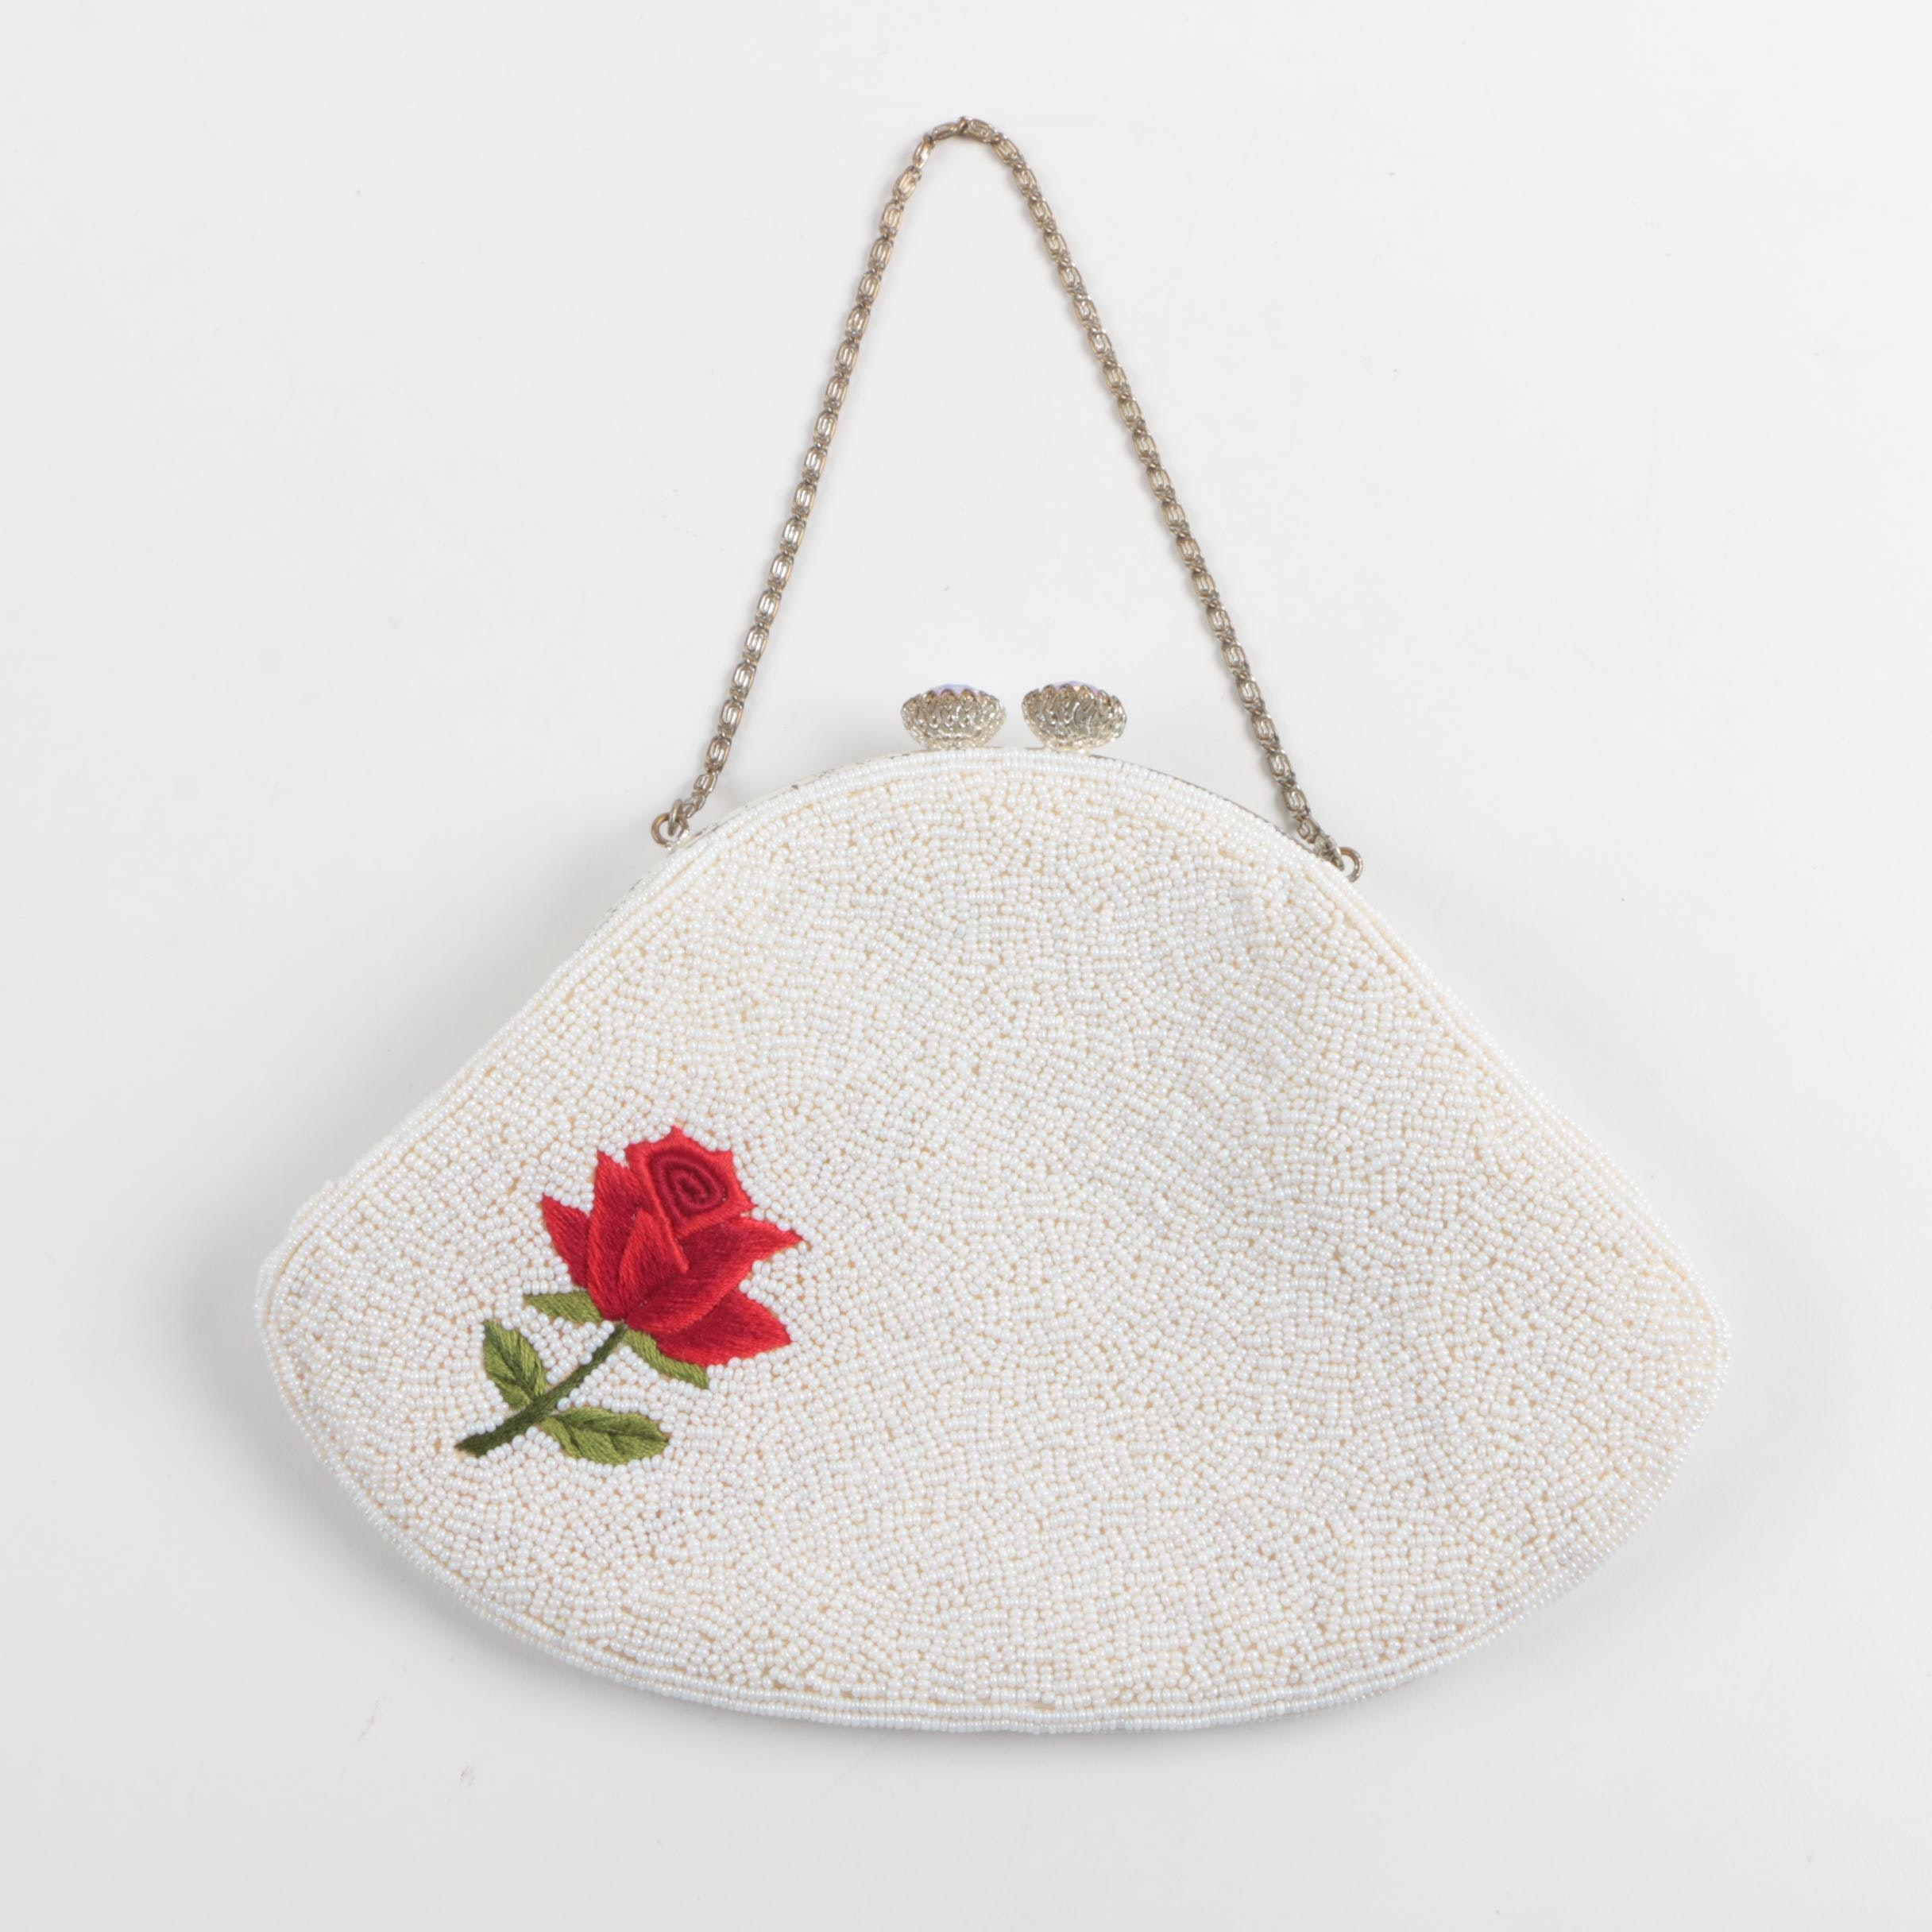 Vintage Beaded Purse with Embroidered Rose